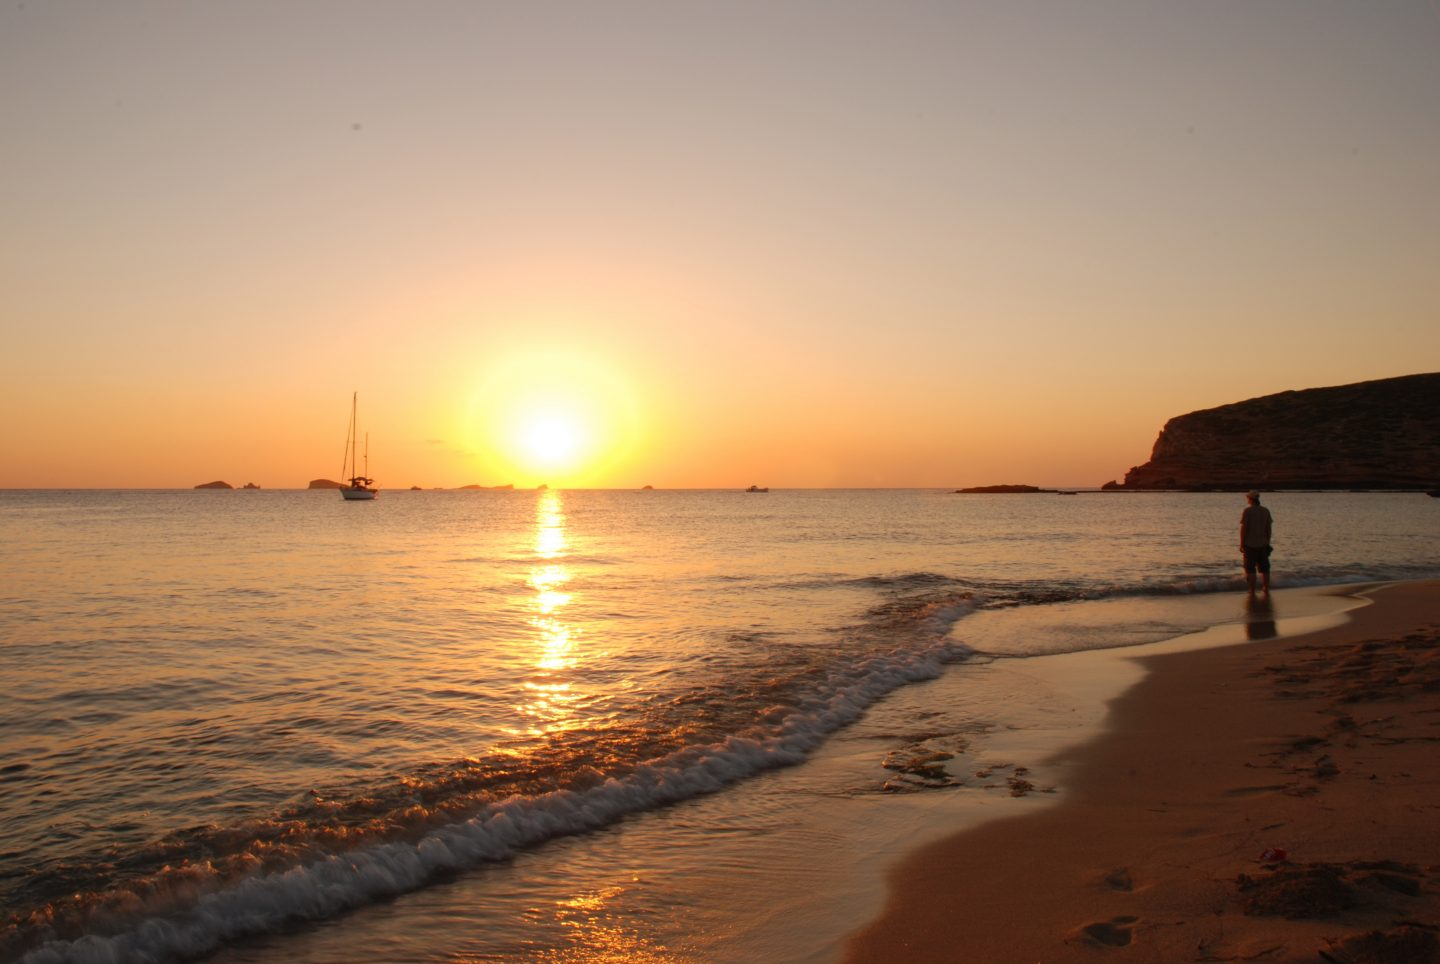 8 Reasons I Want To Go To Ibiza